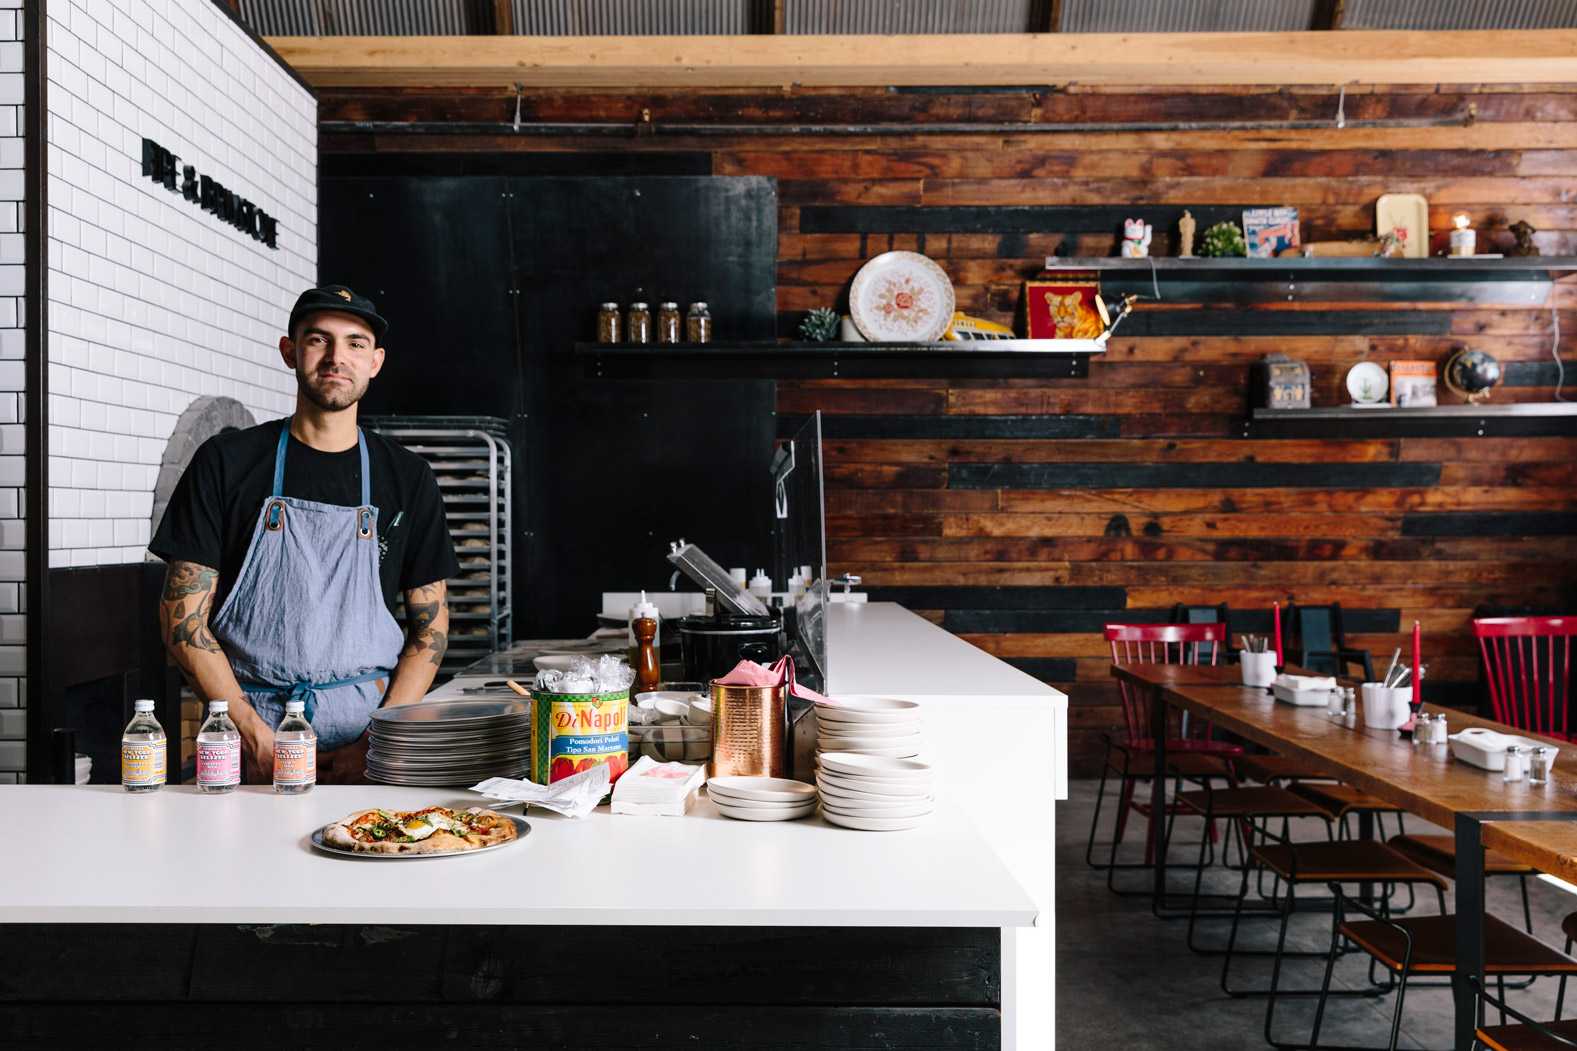 fire and brimstone - Bold and hearty wood-fired cuisine specializing in pizza, sandwiches, and salads.